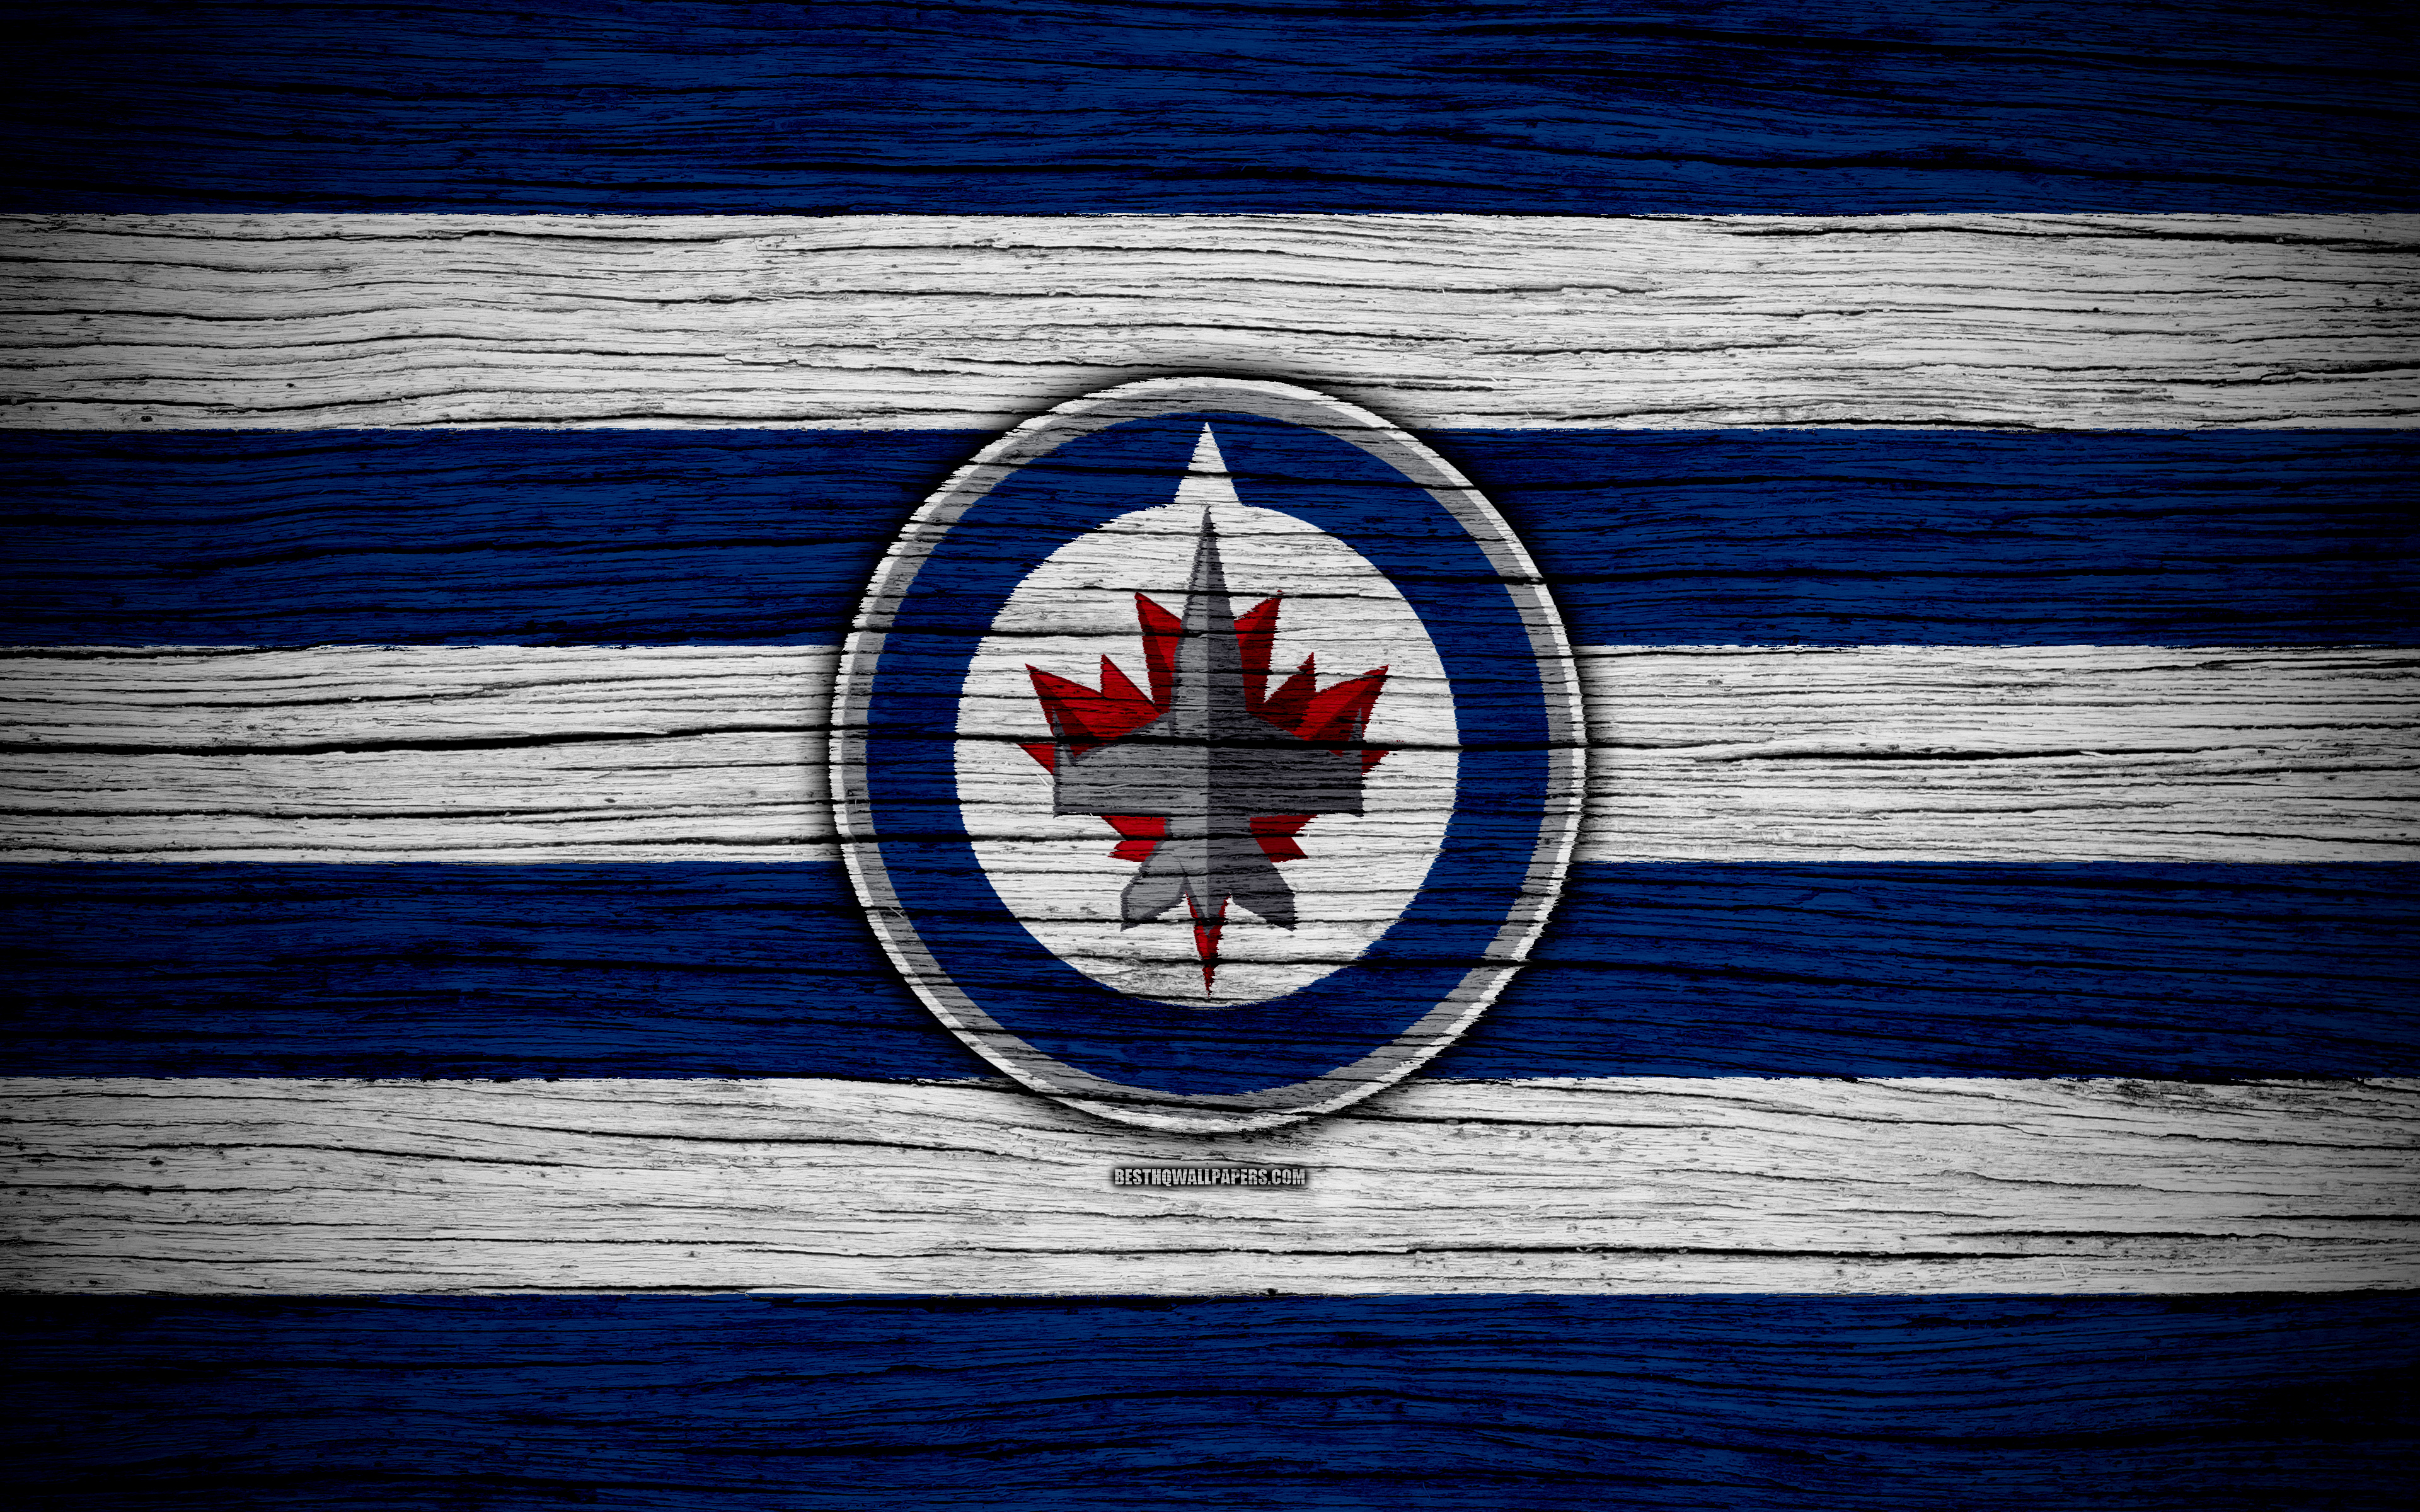 download wallpapers winnipeg jets  4k  nhl  hockey club  western conference  usa  logo  wooden